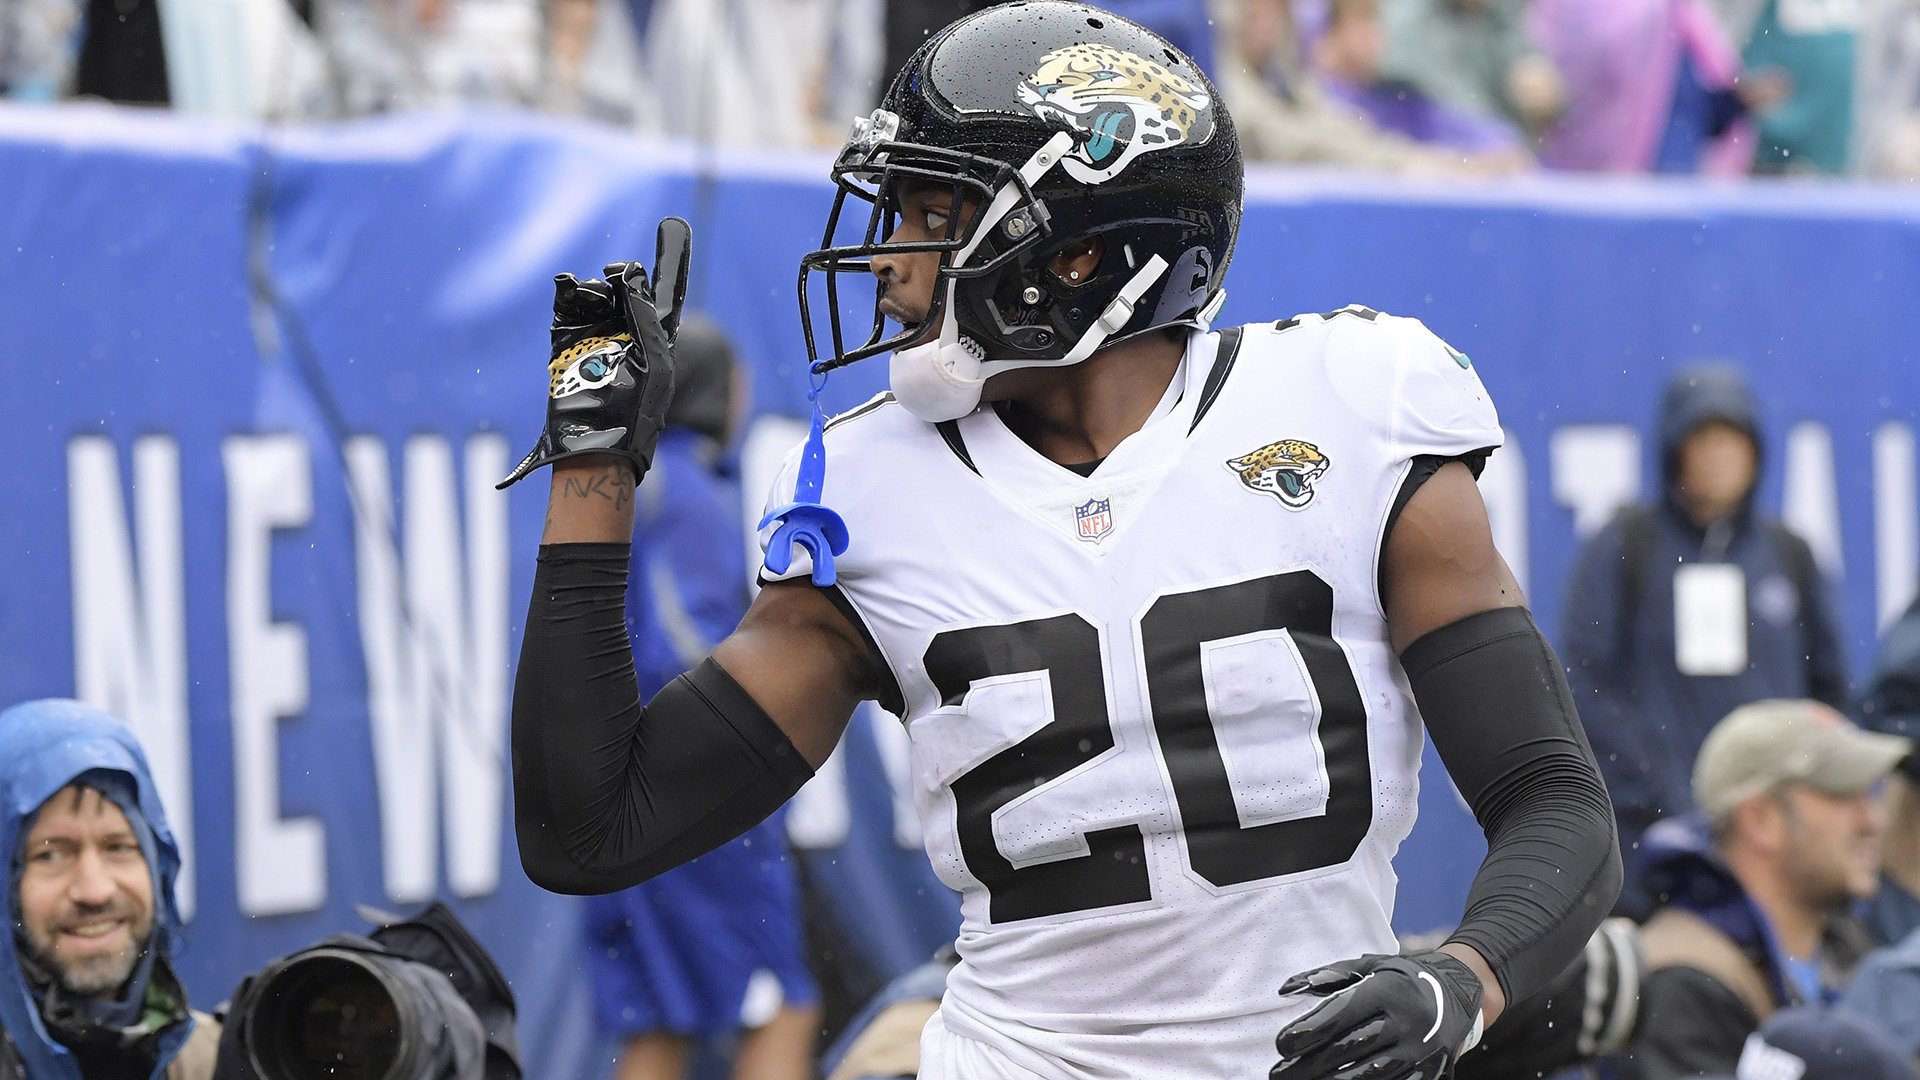 Jalen Ramsey's on-field attitude needed for top NFL players | NBC Sports